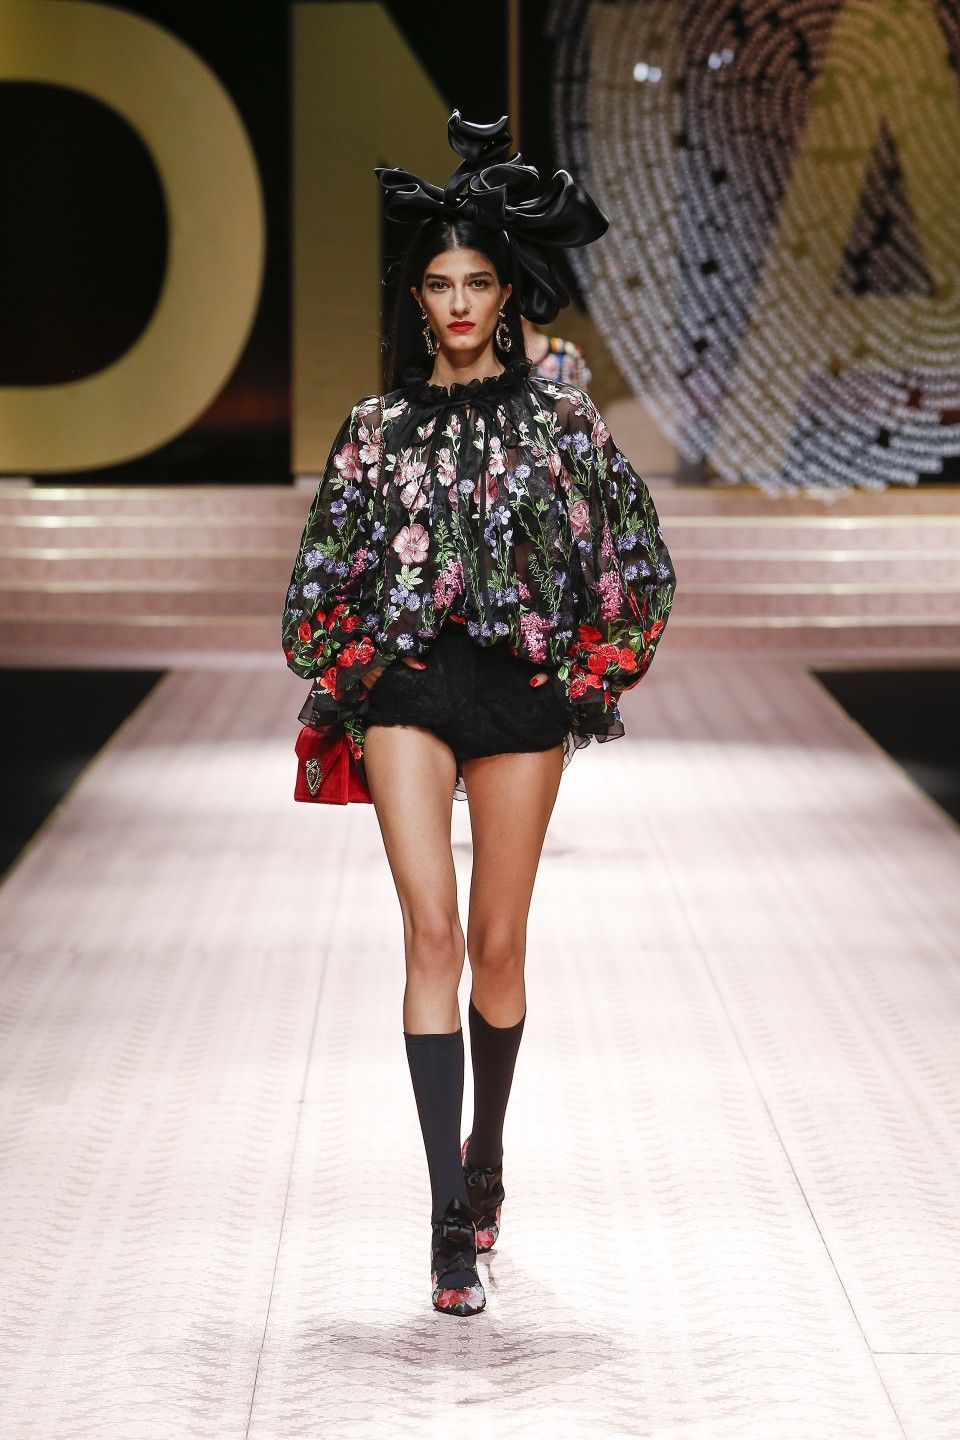 competitive price 597c1 df909 Dolce & Gabbana Spring/Summer 2019 #DGDNA Women's Fashion ...